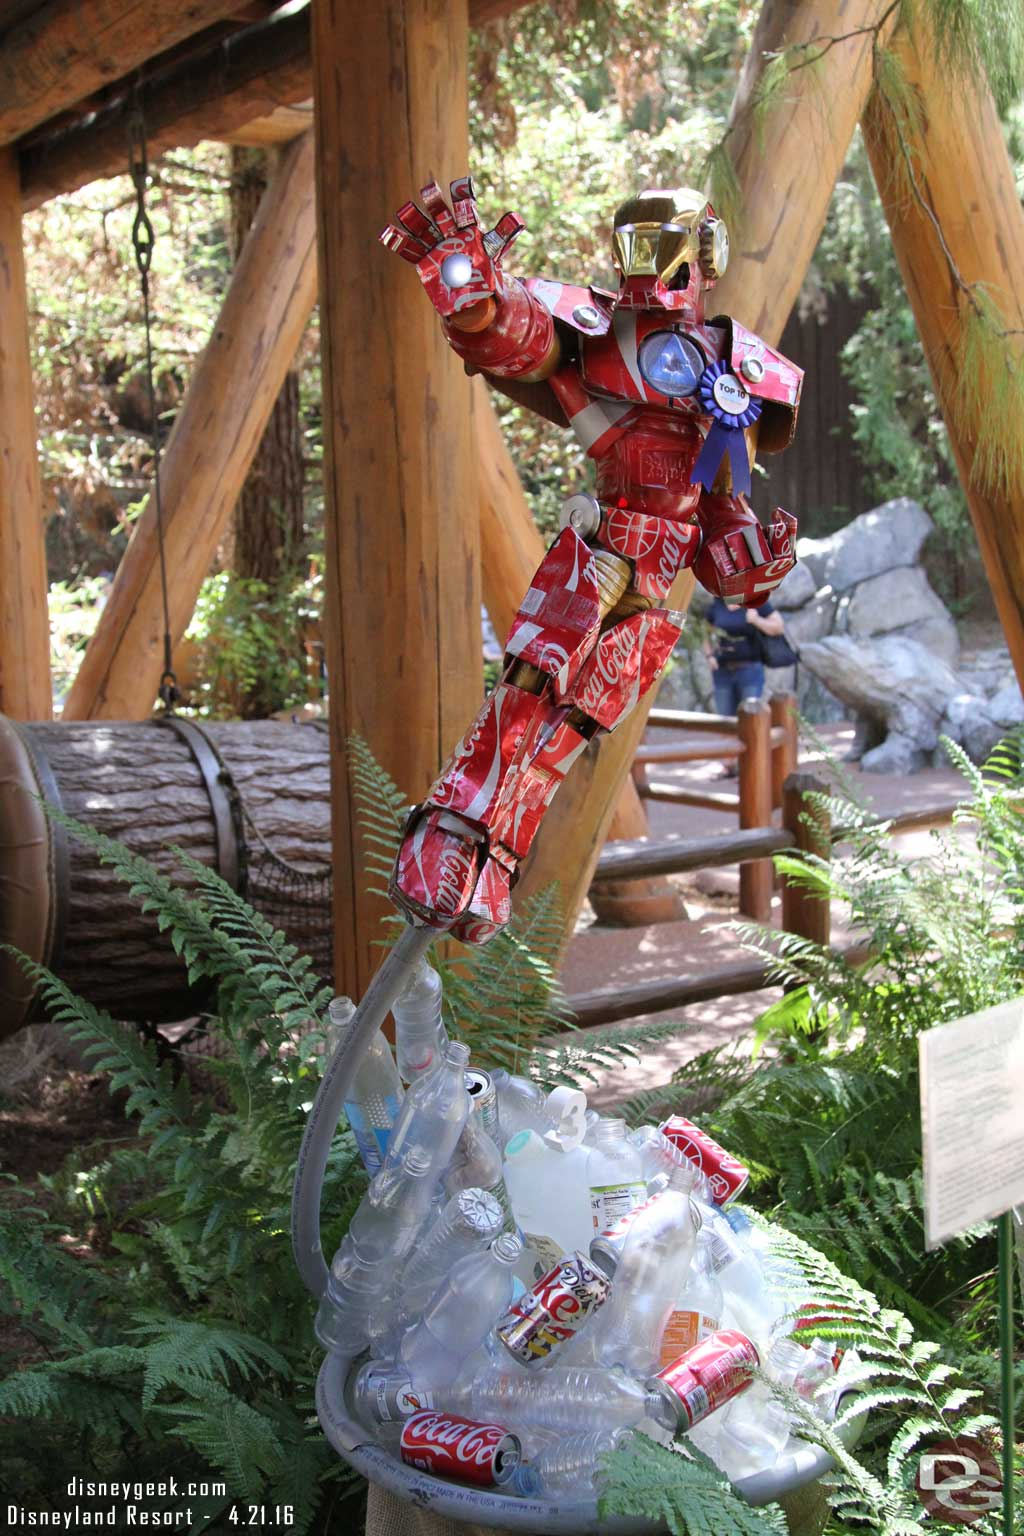 Envi-Iron Man - Animation Anarch - FOS Manufacturing Animation, DLR Building 9073